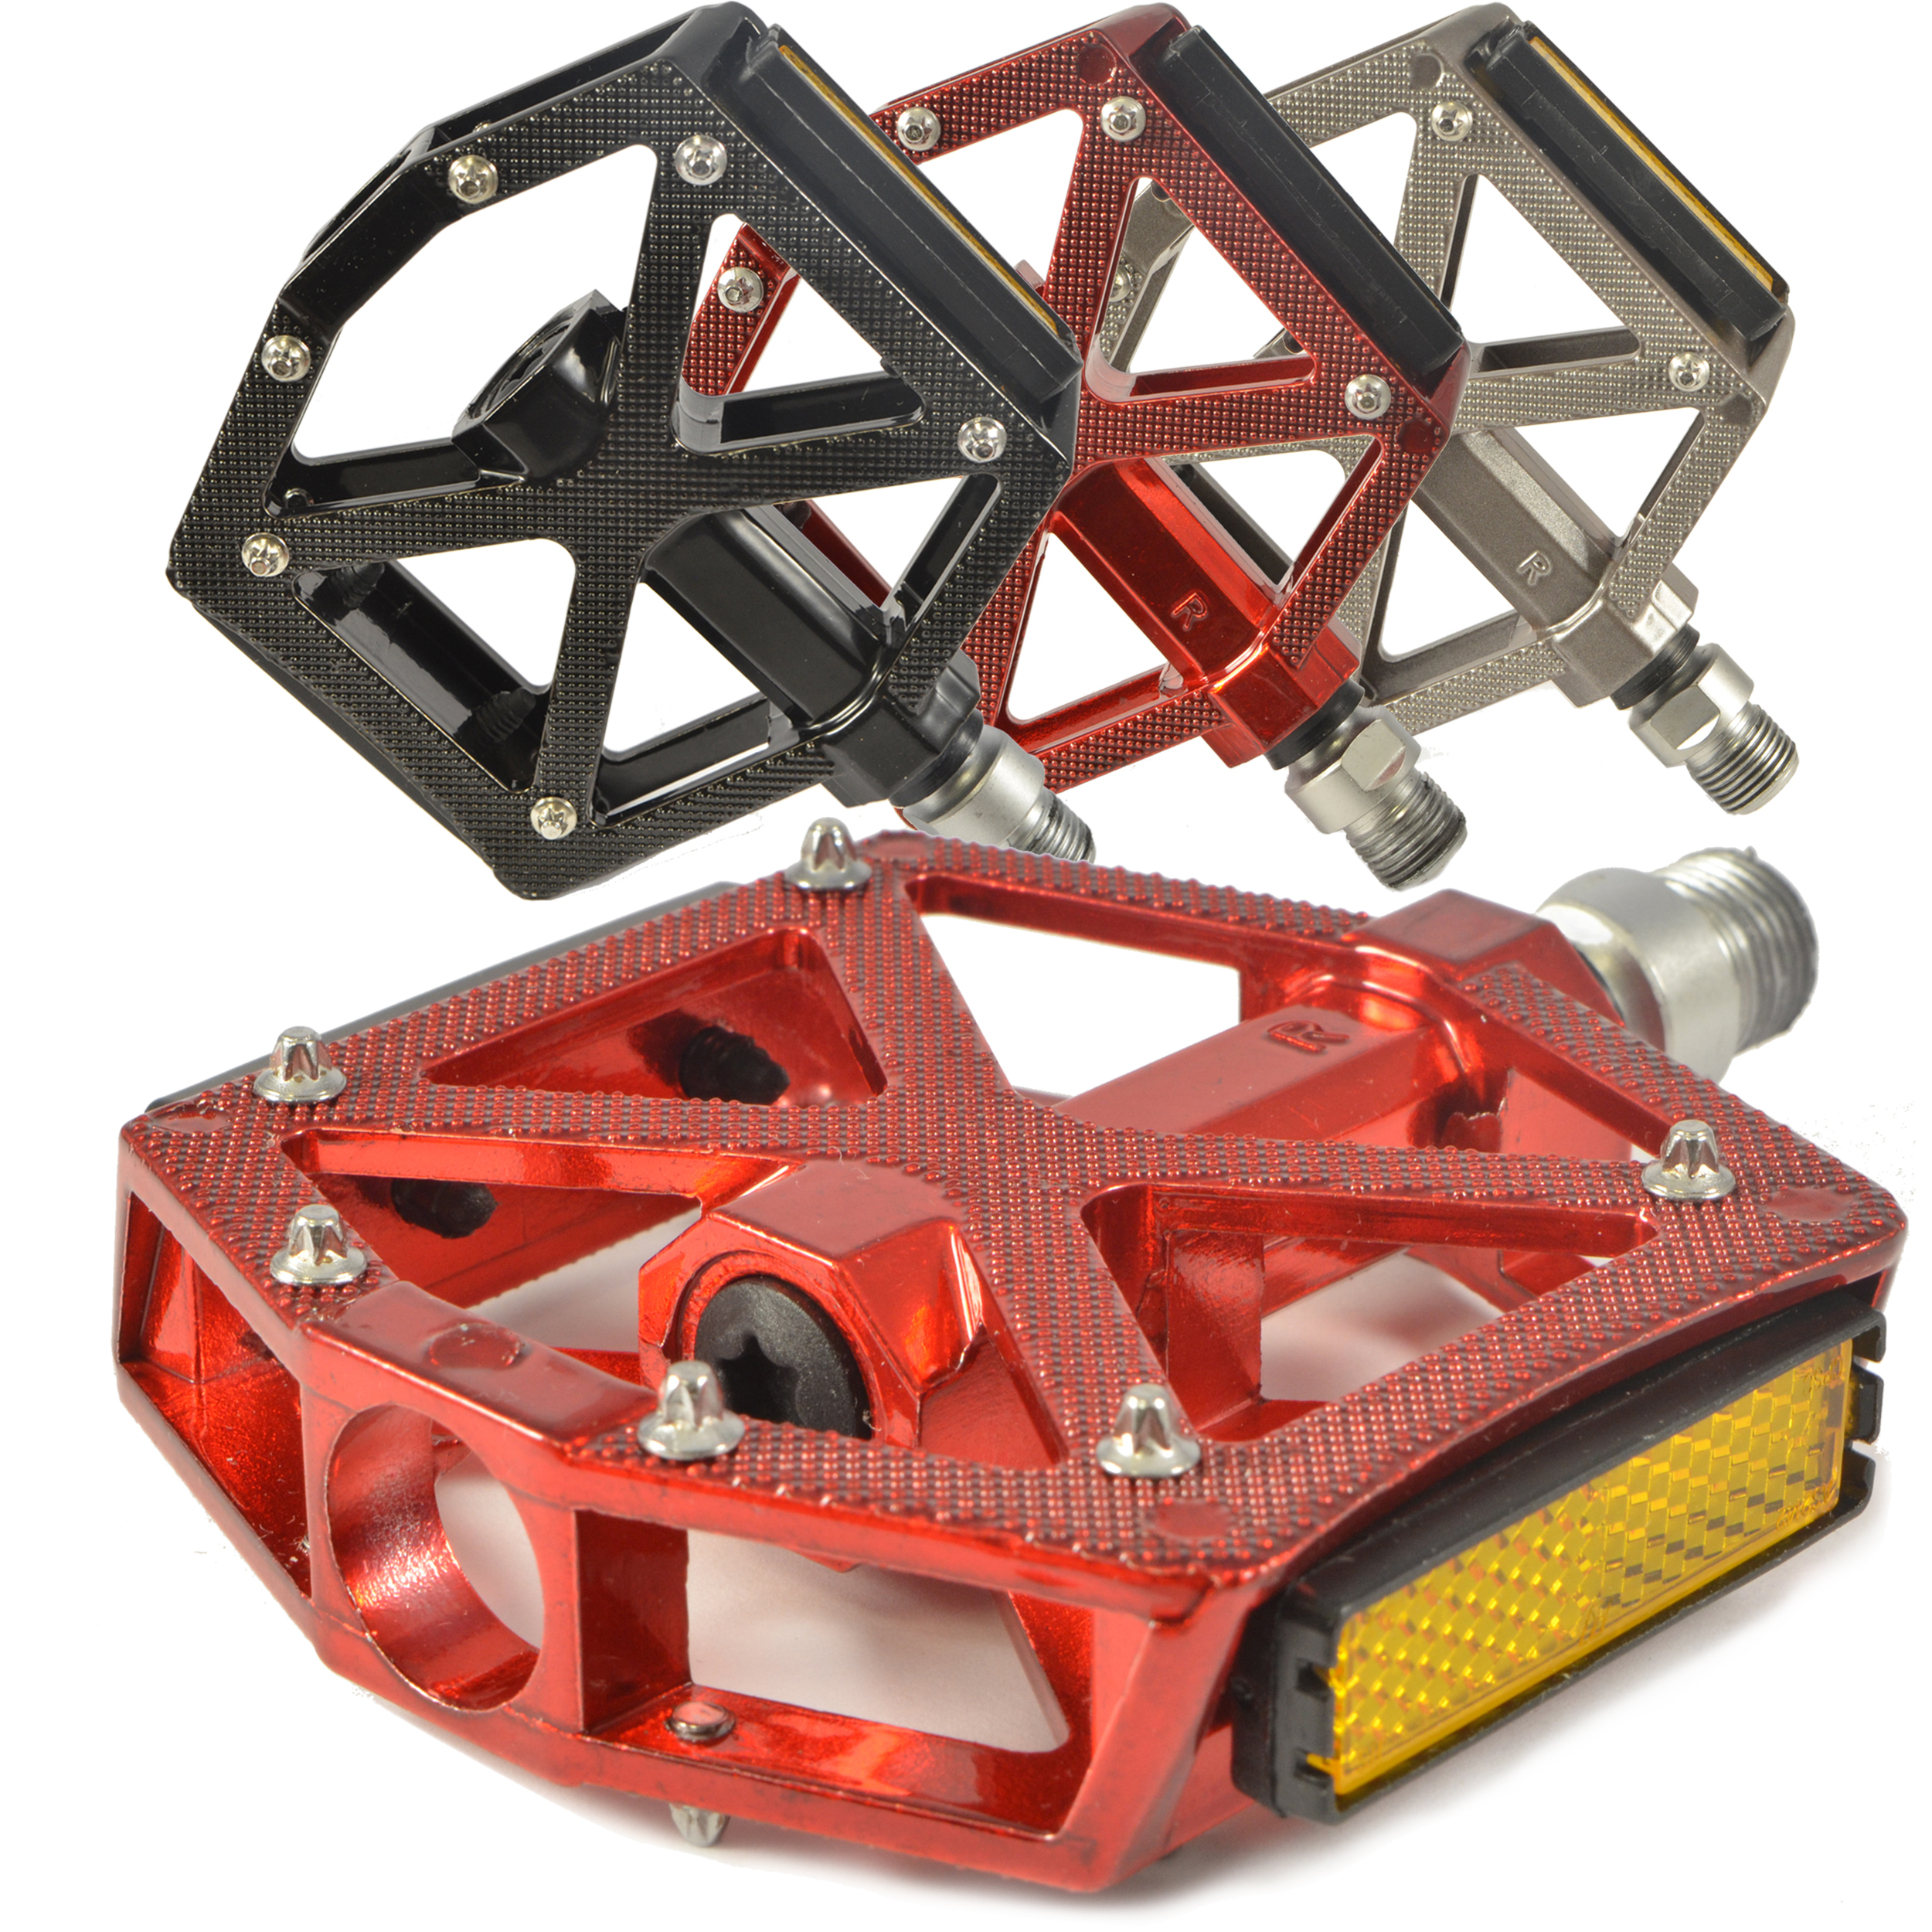 "Lumintrail PD-603S MTB BMX Road Mountain Bike Bicycle Platform Pedals Flat Alloy Sealed Bearing 9/16"" inch"